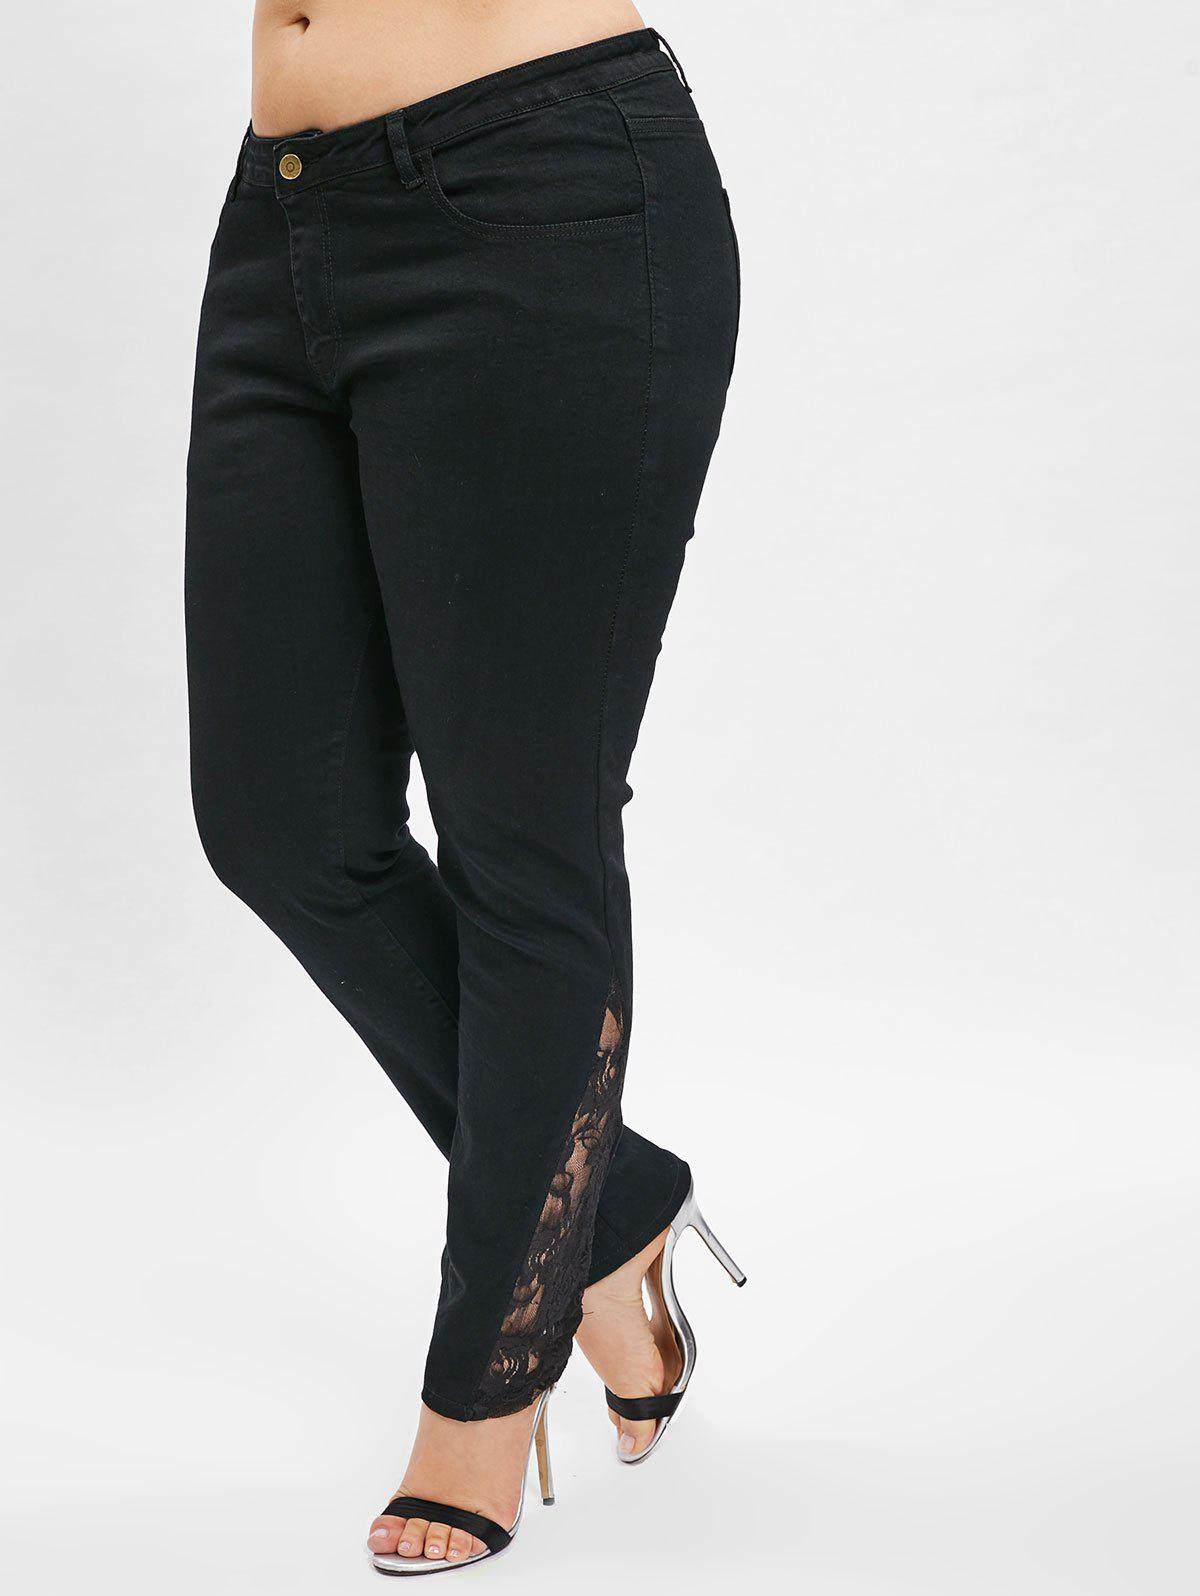 New Lace Panel Plus Size Skinny Jeans